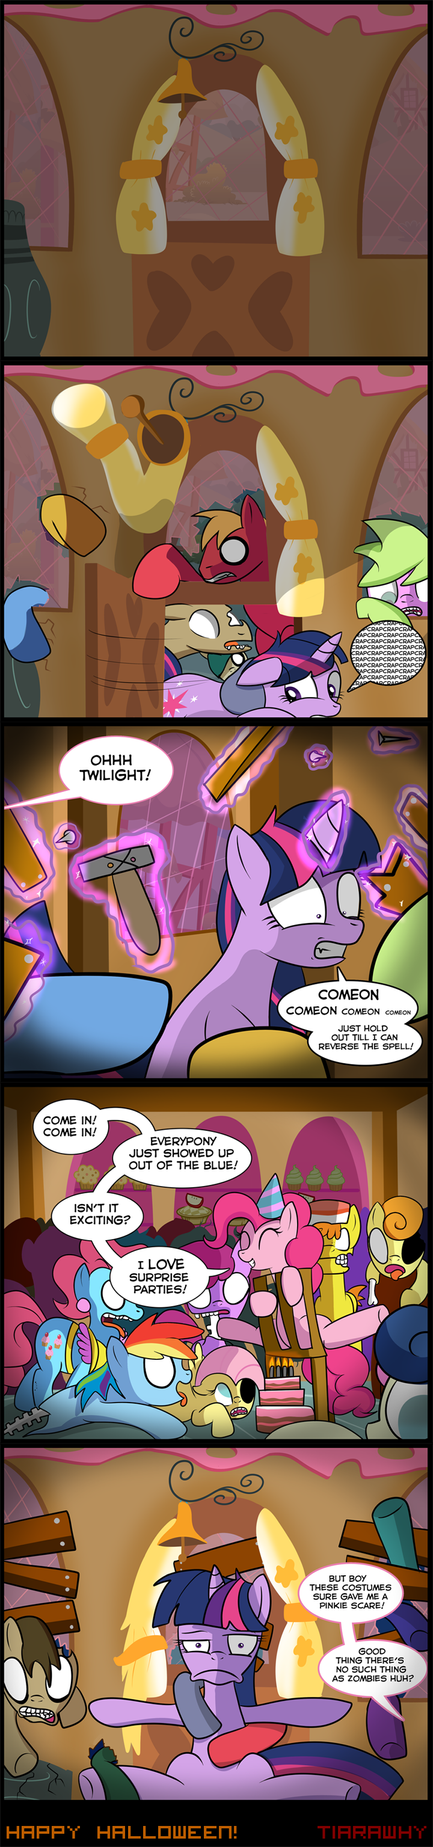 Twilight Sparkle Halloween! by tiarawhy